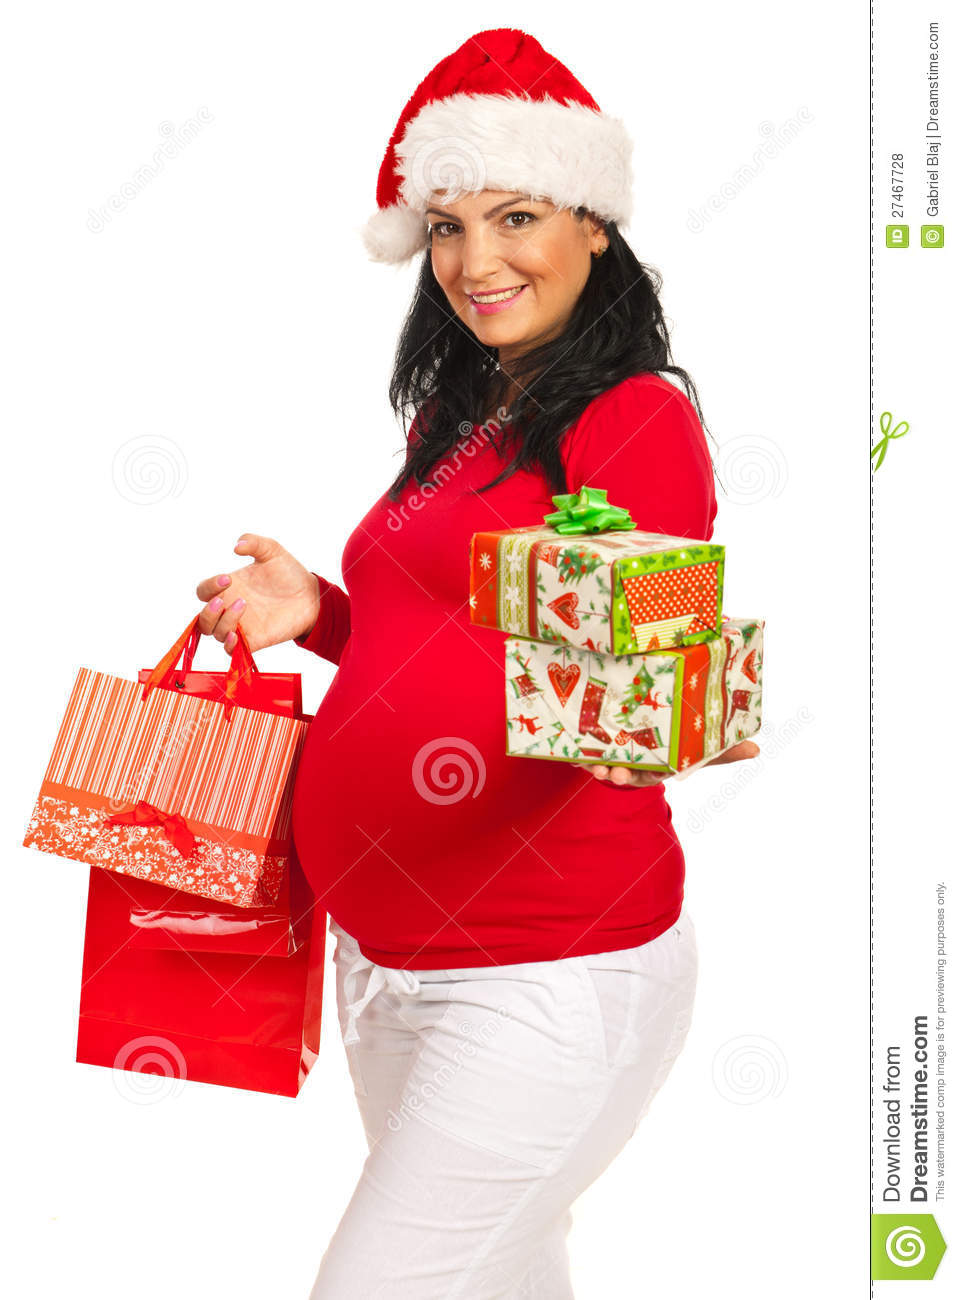 Pregnant Woman With Christmas Gifts Stock Photo - Image of ...